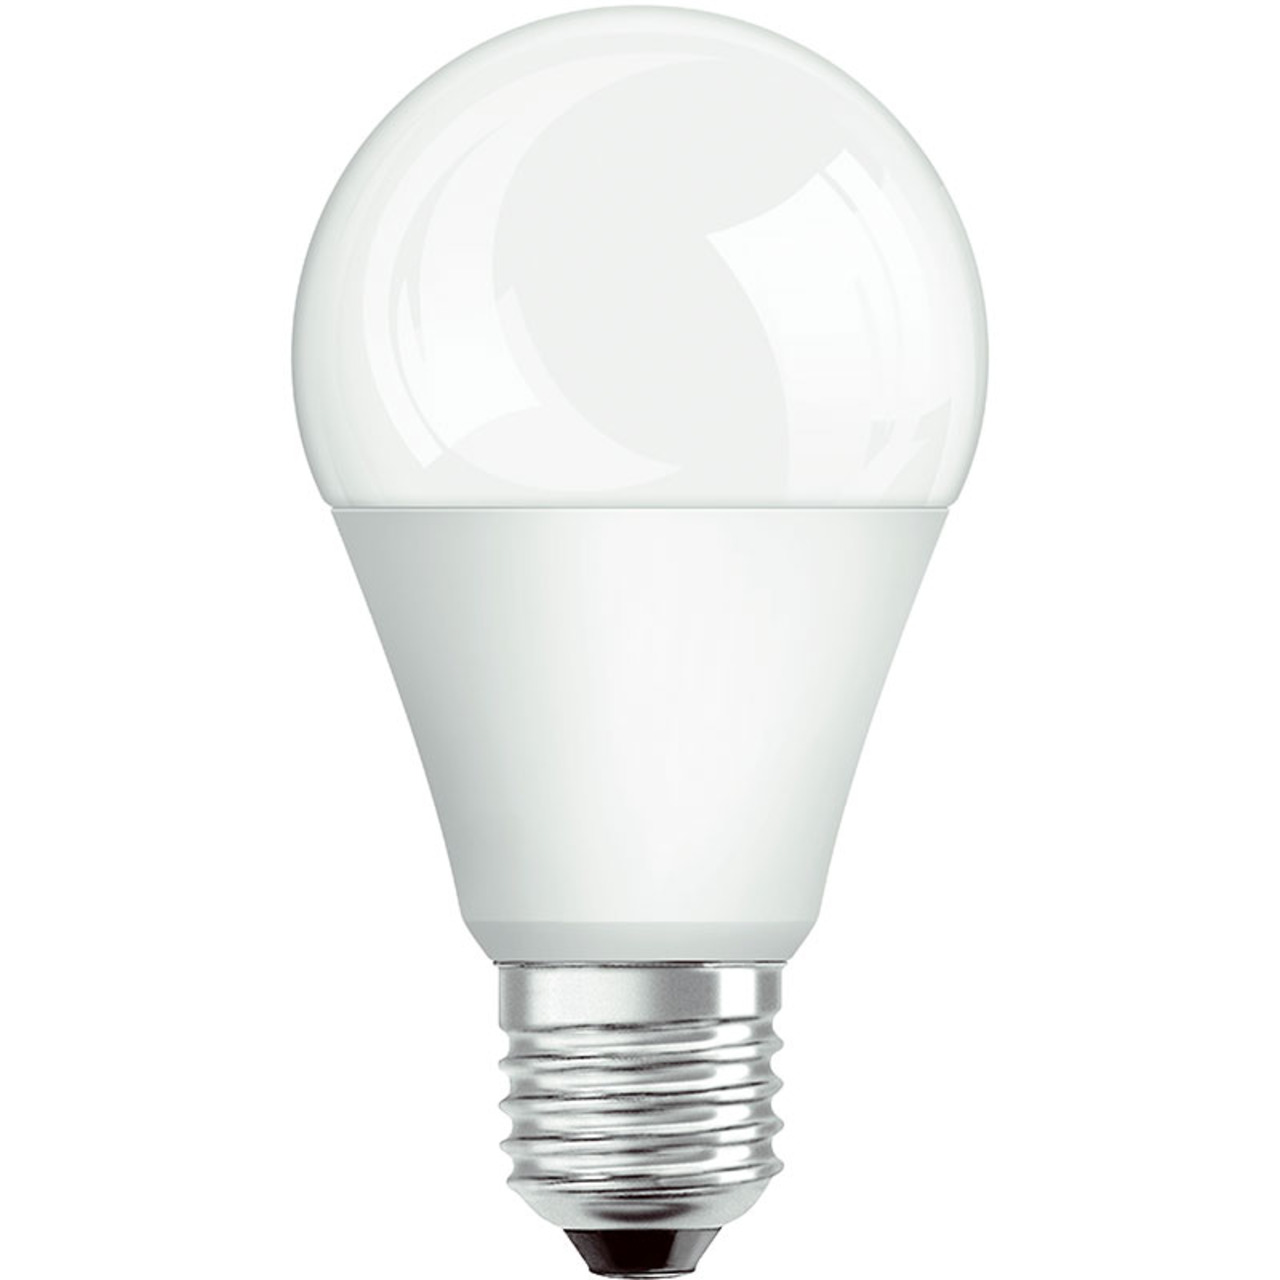 OSRAM LED SUPERSTAR 13-W-LED-Lampe E27- warmweiss- dimmbar